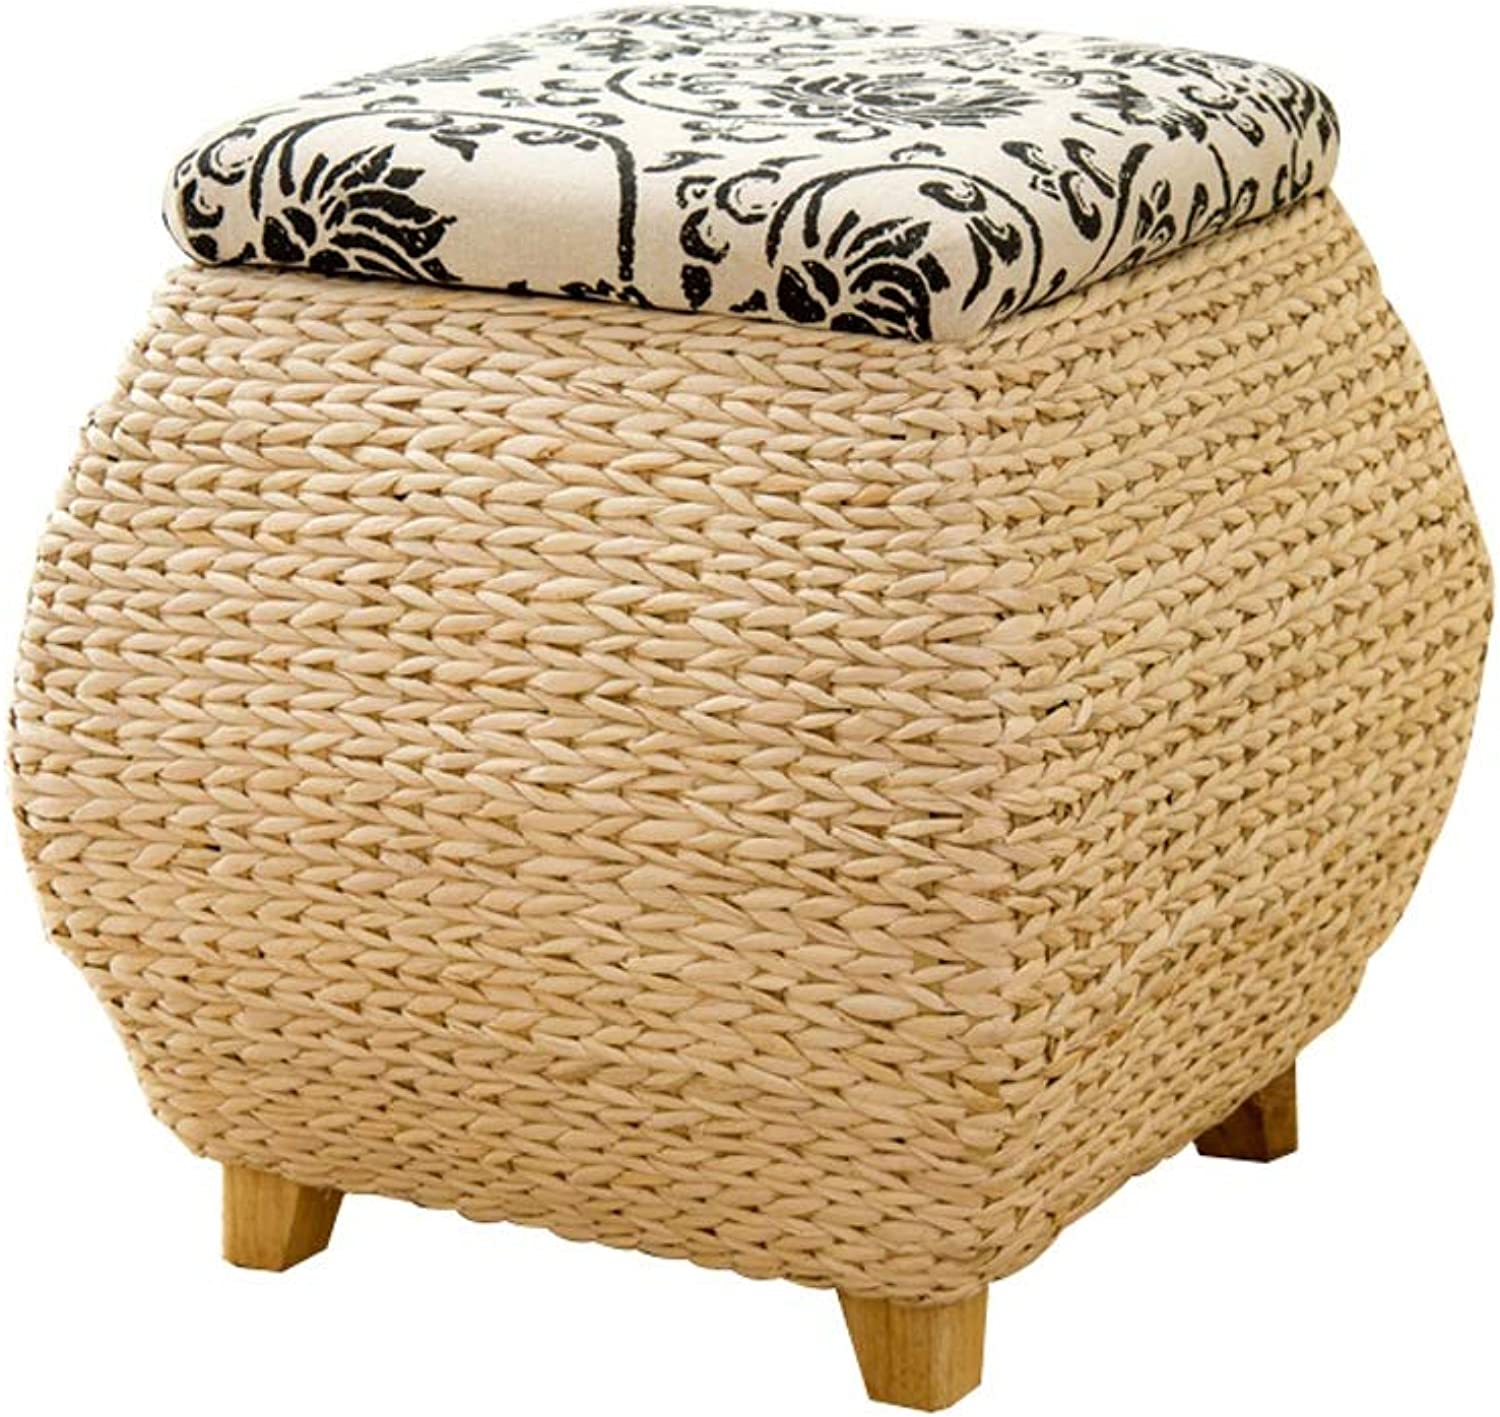 LIUXUEPING Stool, Rattan Stool Change shoes Bench Straw Storage Stool Storage Stool Stool Sofa Stool Bed End Stool